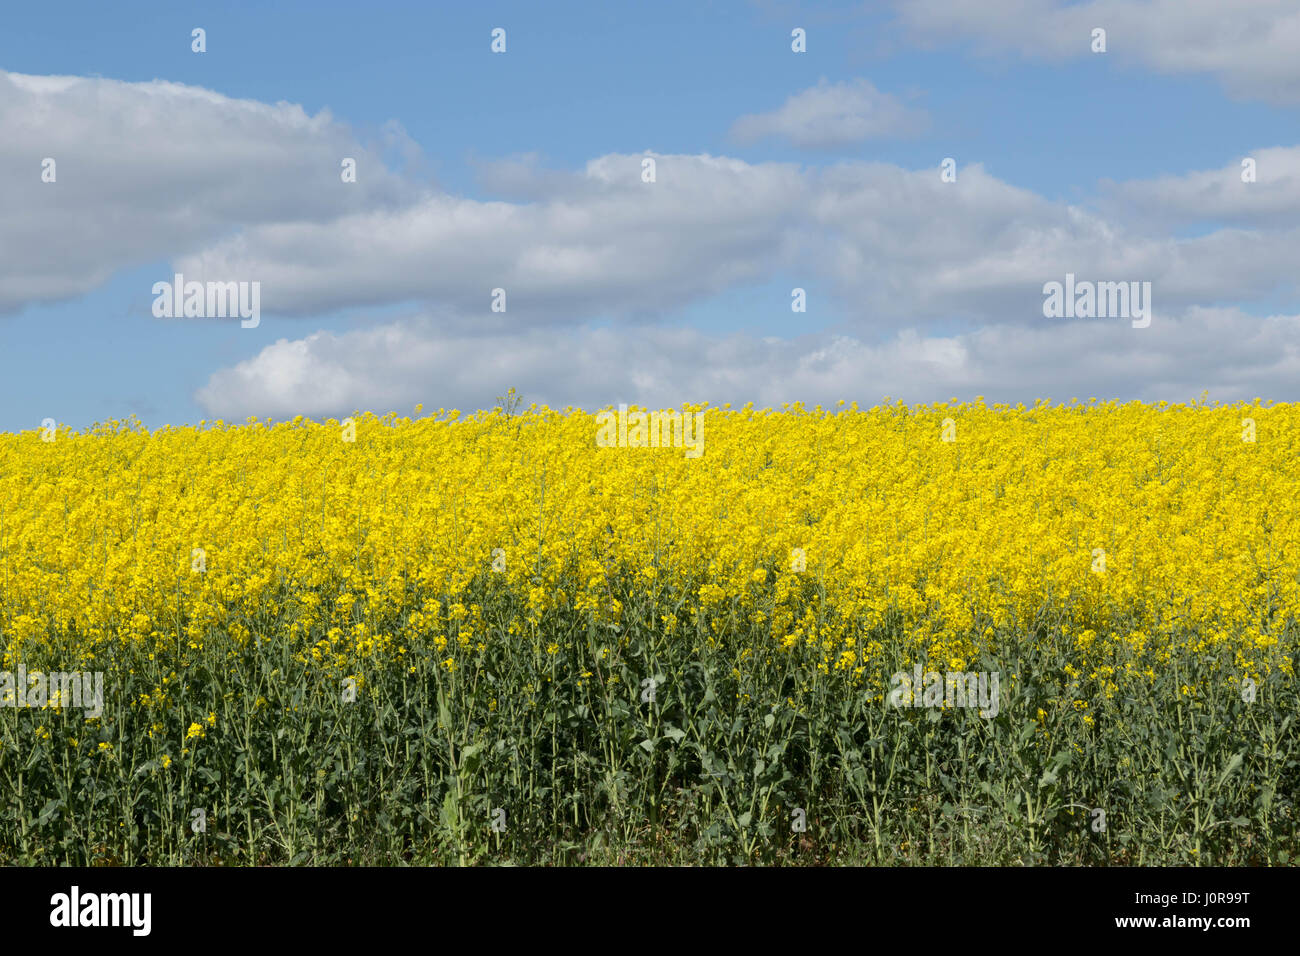 Rapeseed field with blue sky and white fluffy clouds - Stock Image